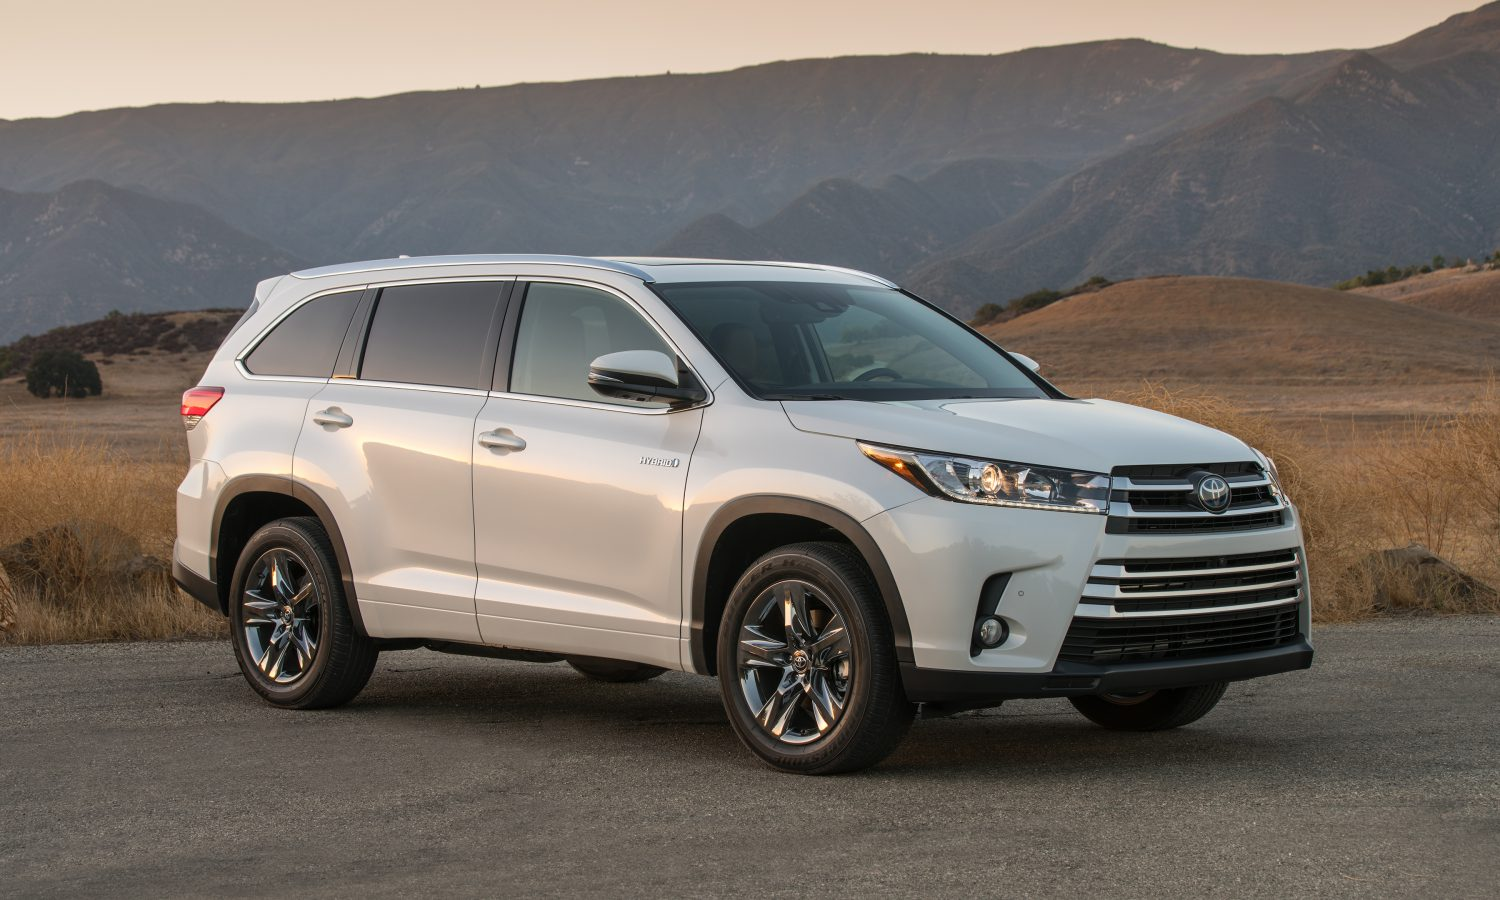 2018 Toyota Highlander Delivers On Value Safety Features And Performance For Families Of All Sizes Toyota Usa Newsroom